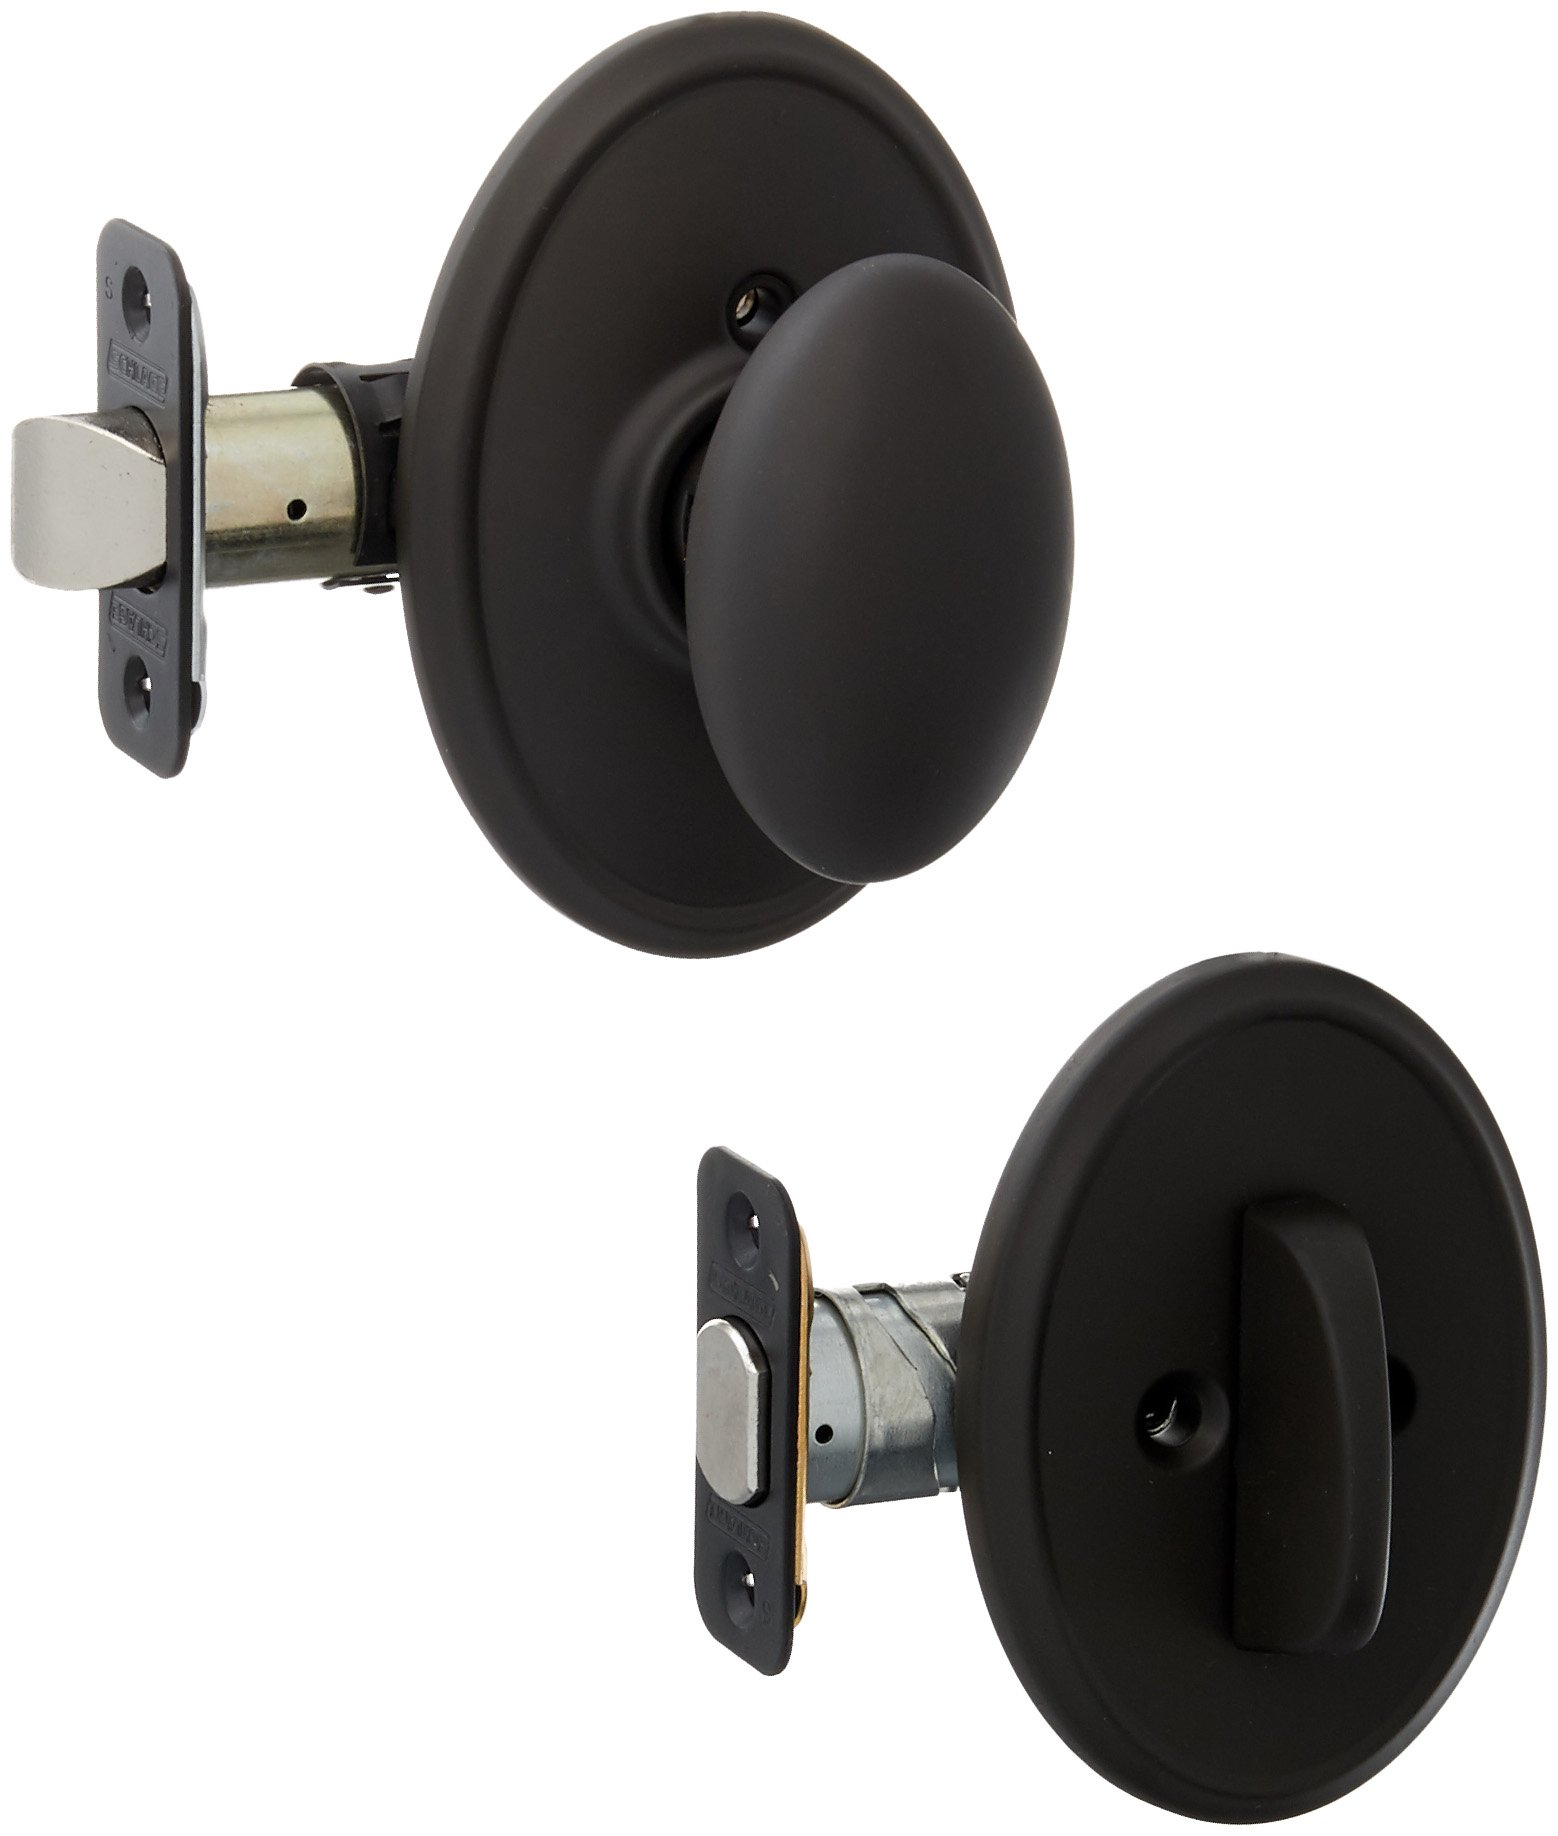 Schlage Lock Company F59SIE613WKF Oil Rubbed Bronze Siena Interior Pack Knob Set with Single Cylinder Deadbolt and Decorative Wakefield Rose